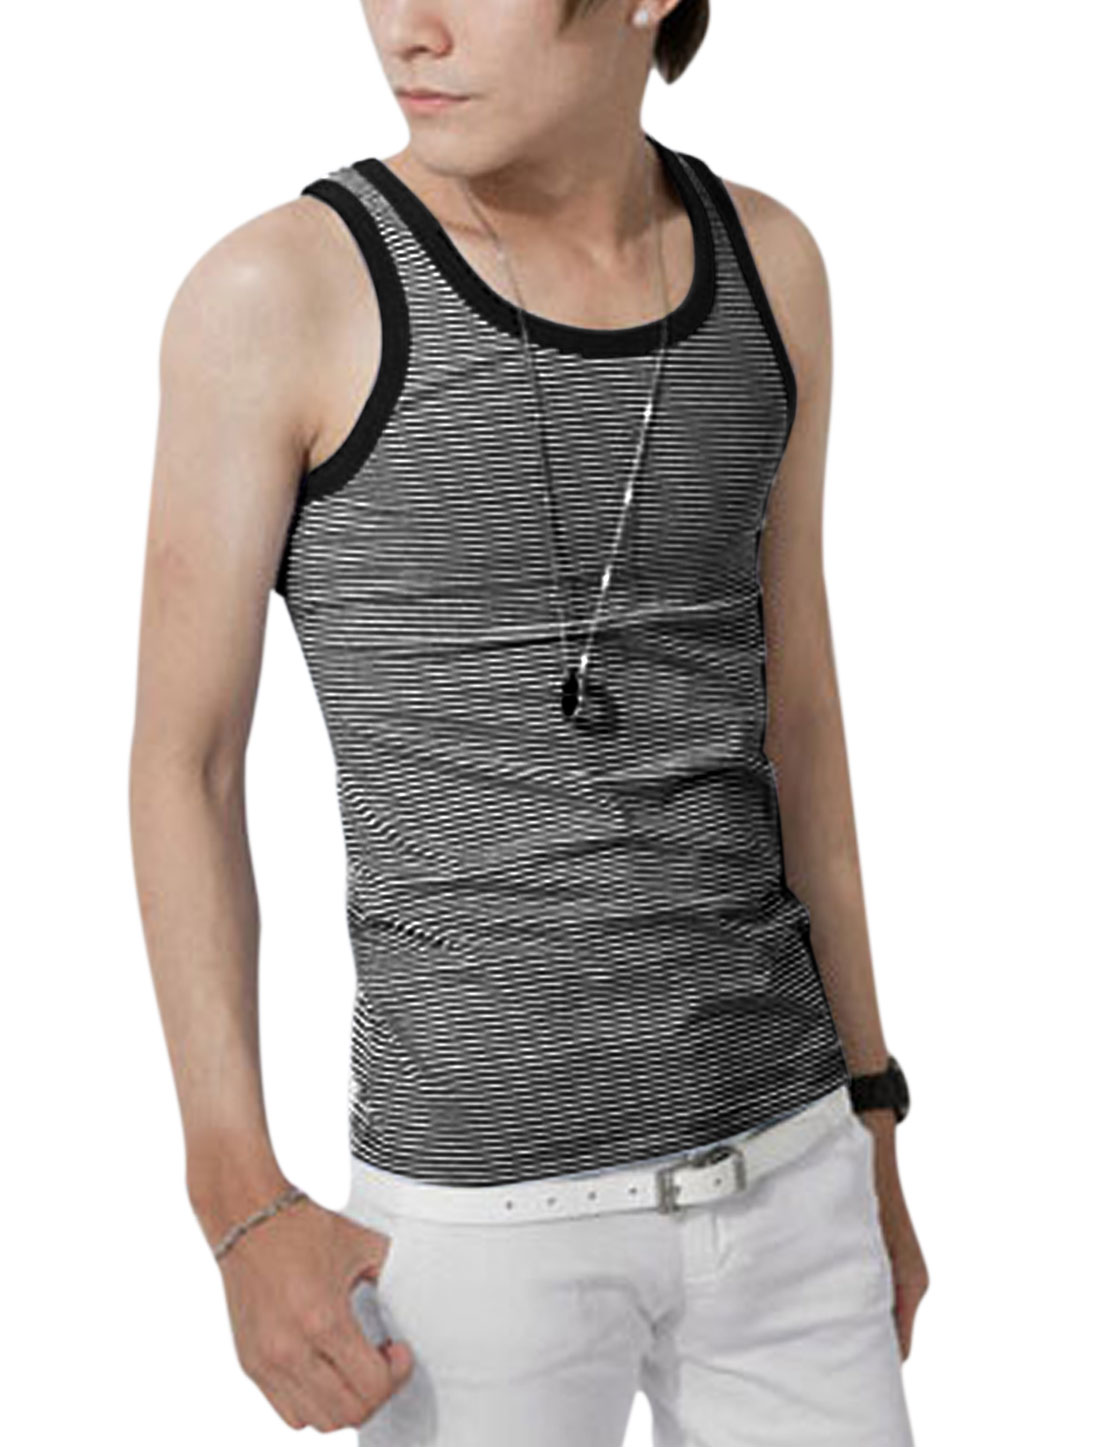 Man Sleeveless Stripes Print Summer Fit Tank Top Black White S